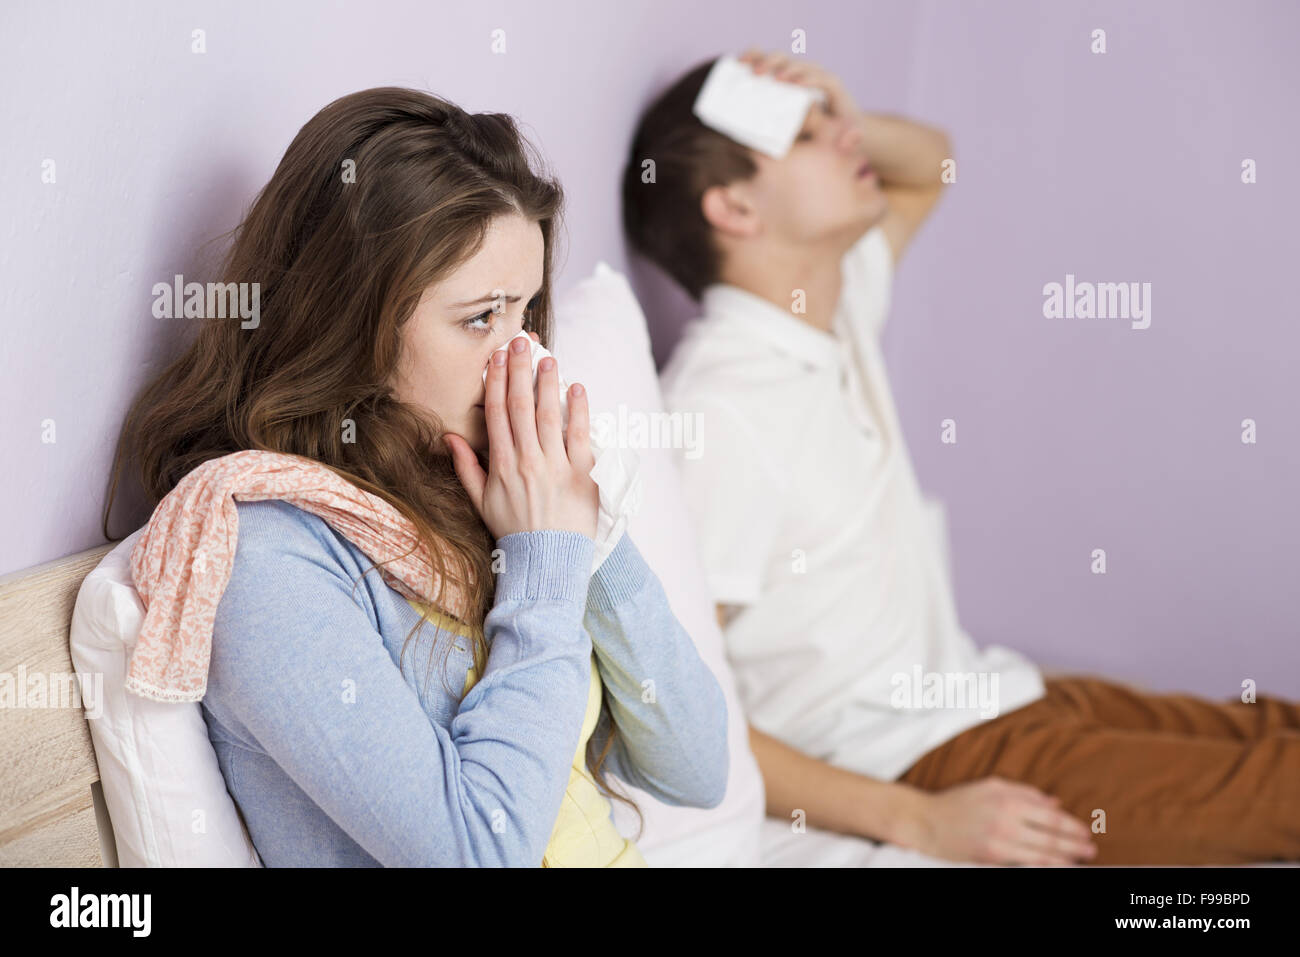 Sick woman and man have cold, flu and high fever. - Stock Image